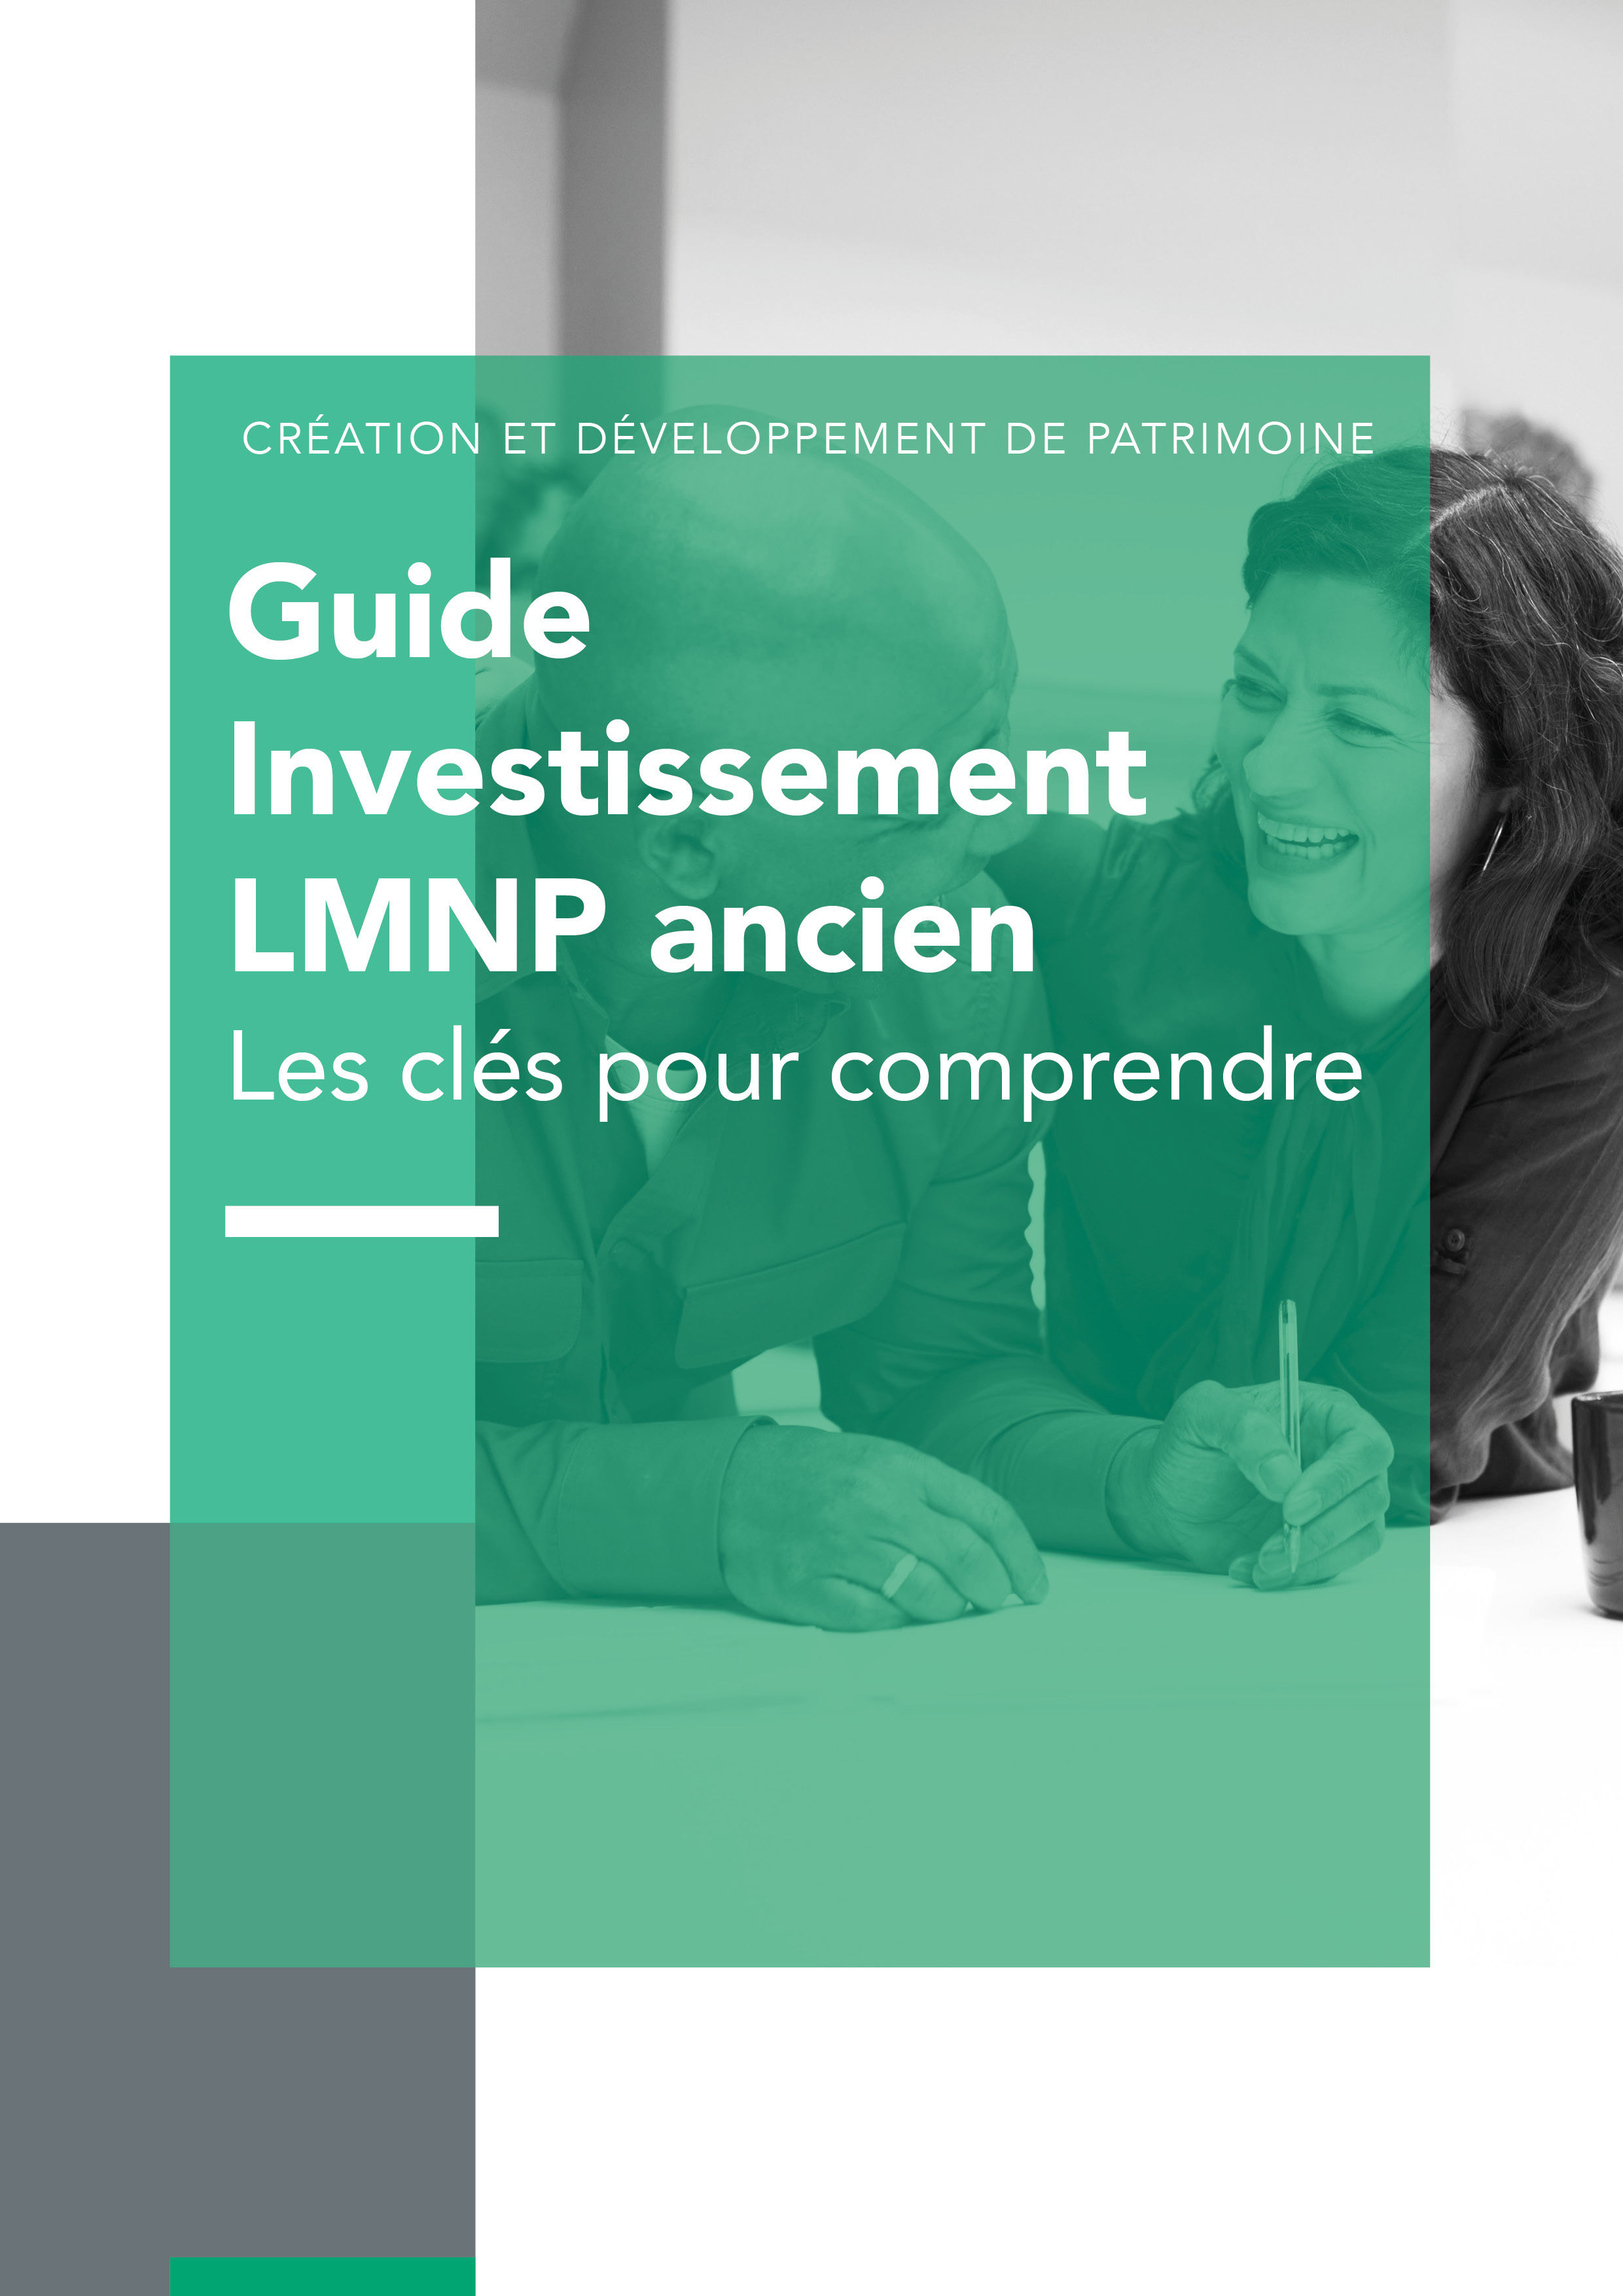 Guide investissement LMNP ancien